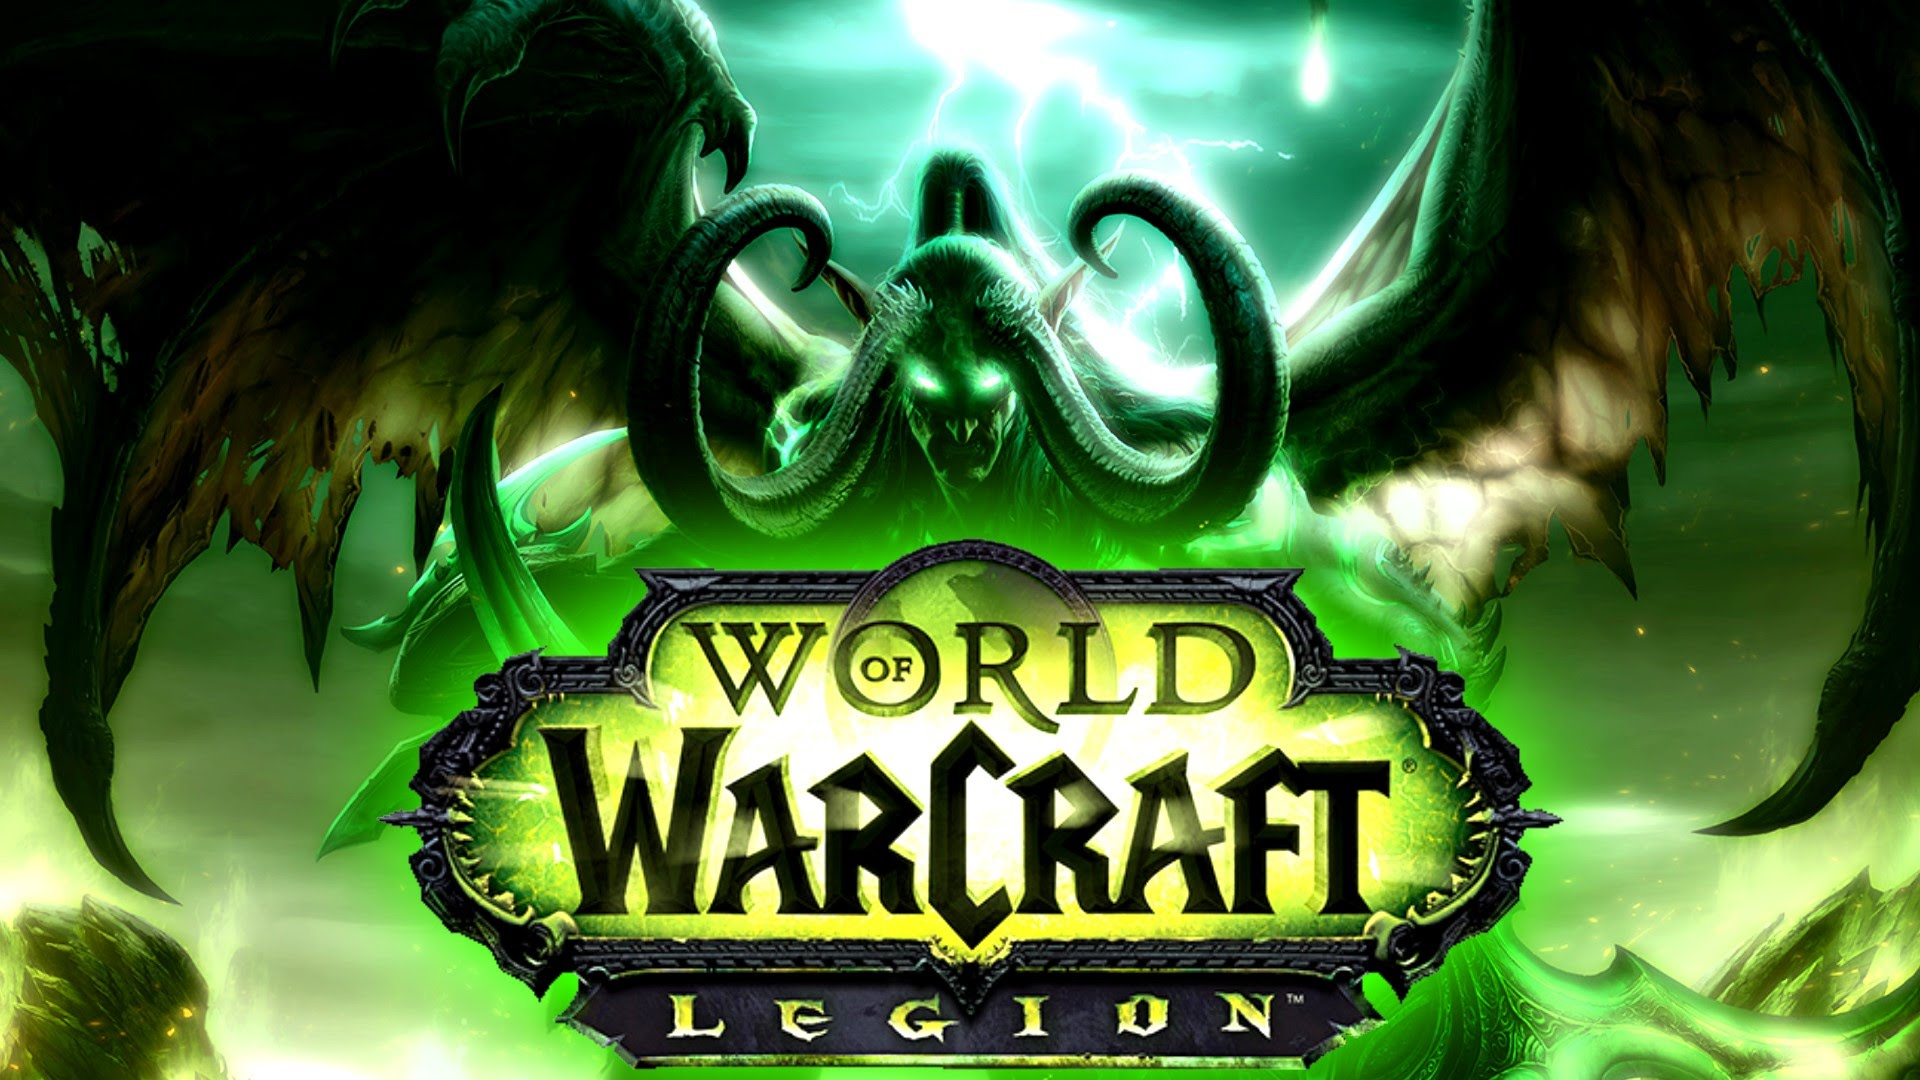 https://i1.wp.com/cdn.wccftech.com/wp-content/uploads/2016/06/world-of-warcraft-legion.jpg